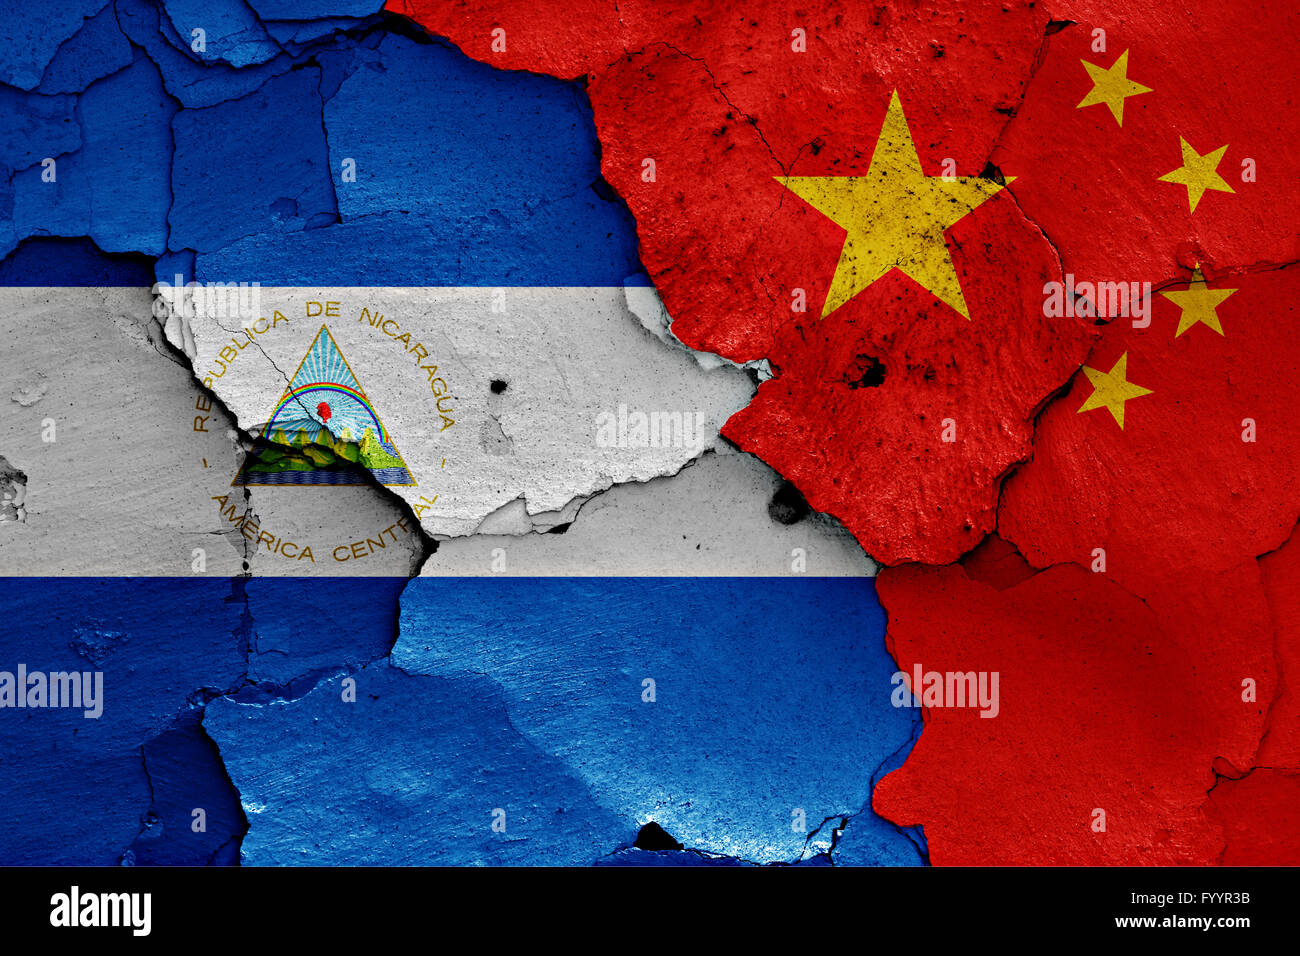 flags of Nicaragua and China painted on cracked wall - Stock Image